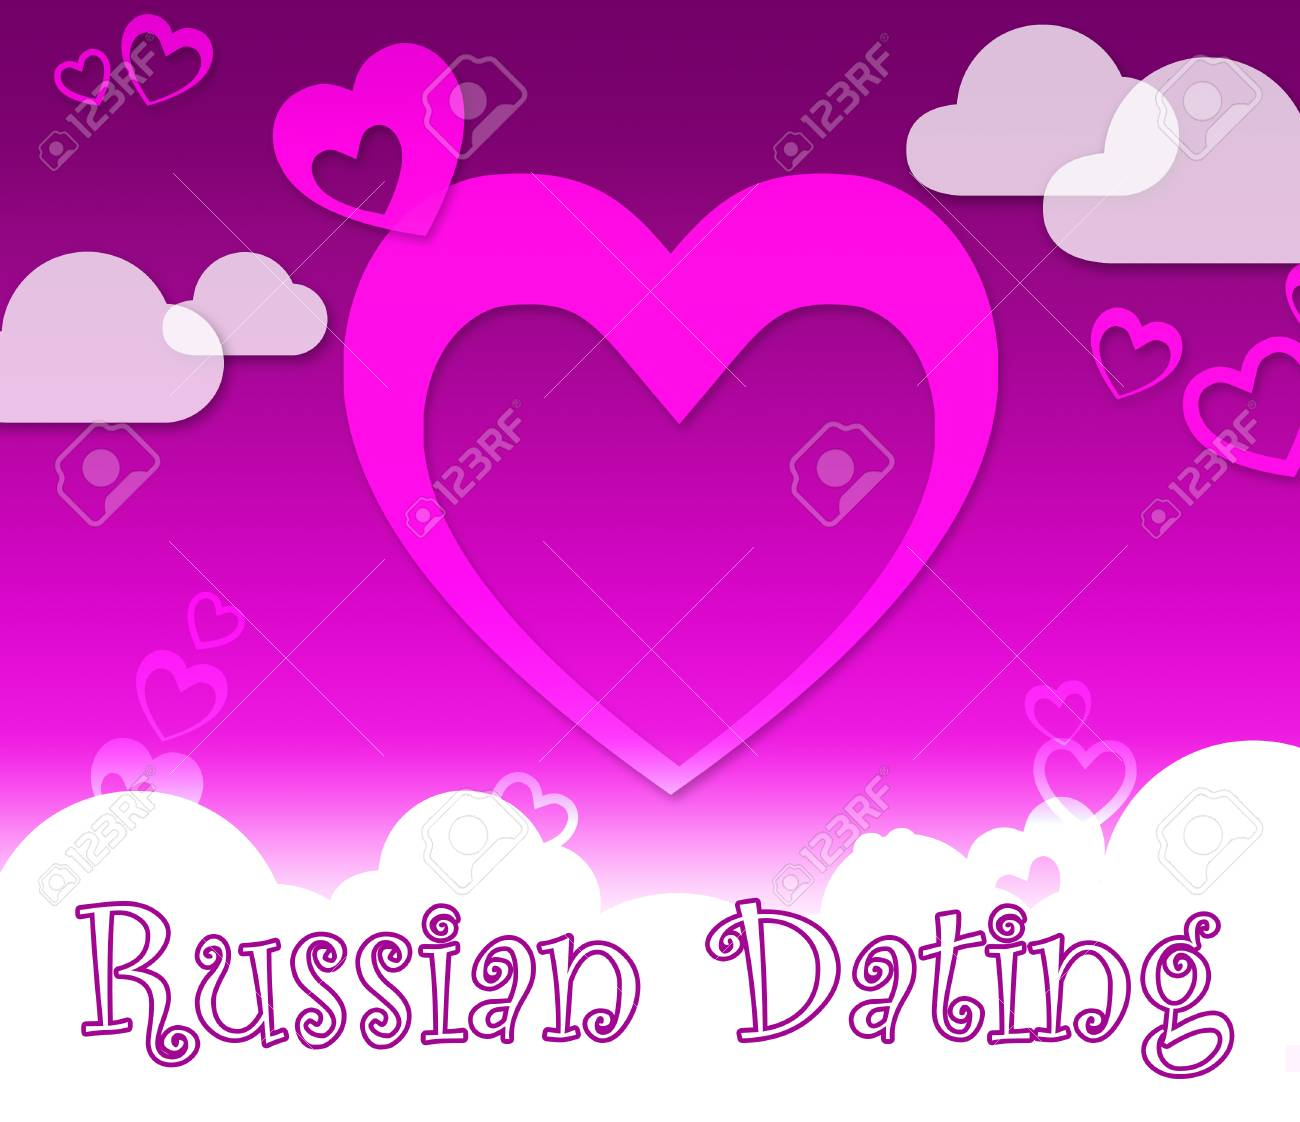 russian-dating-means-in-a-relationship